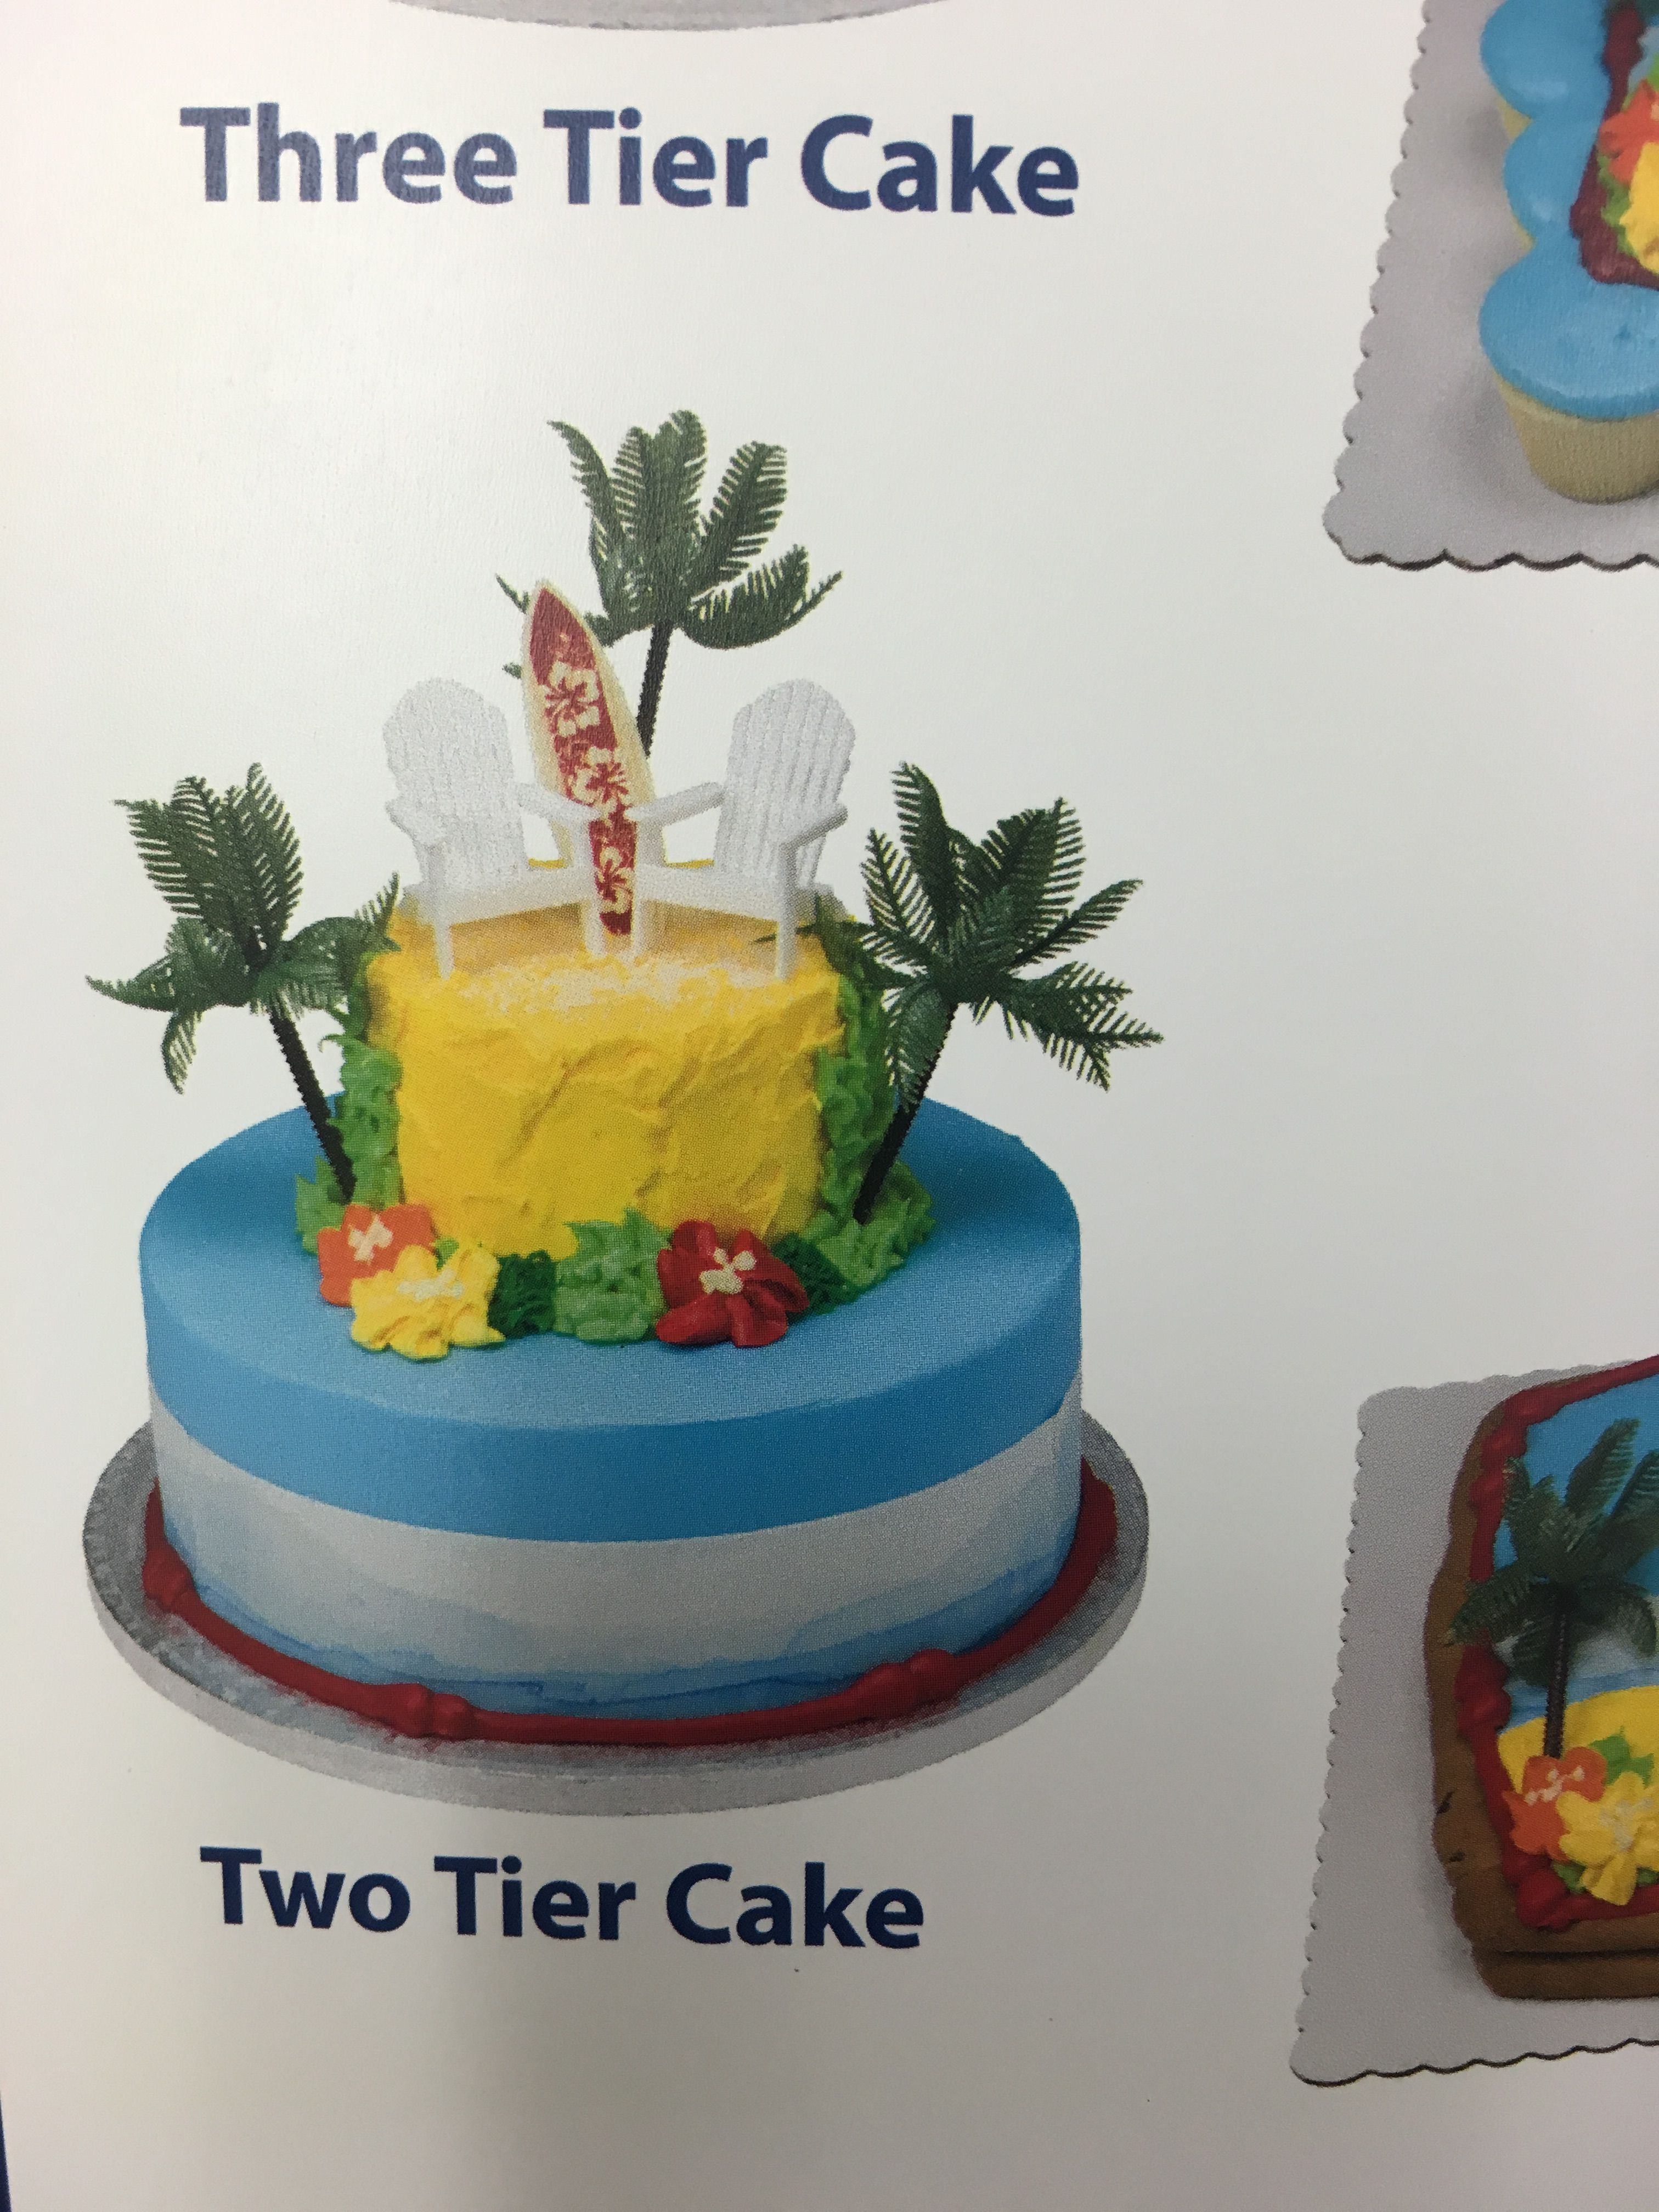 Marvelous Luau Cake From Sams Club With Images Luau Cakes Tiered Funny Birthday Cards Online Alyptdamsfinfo